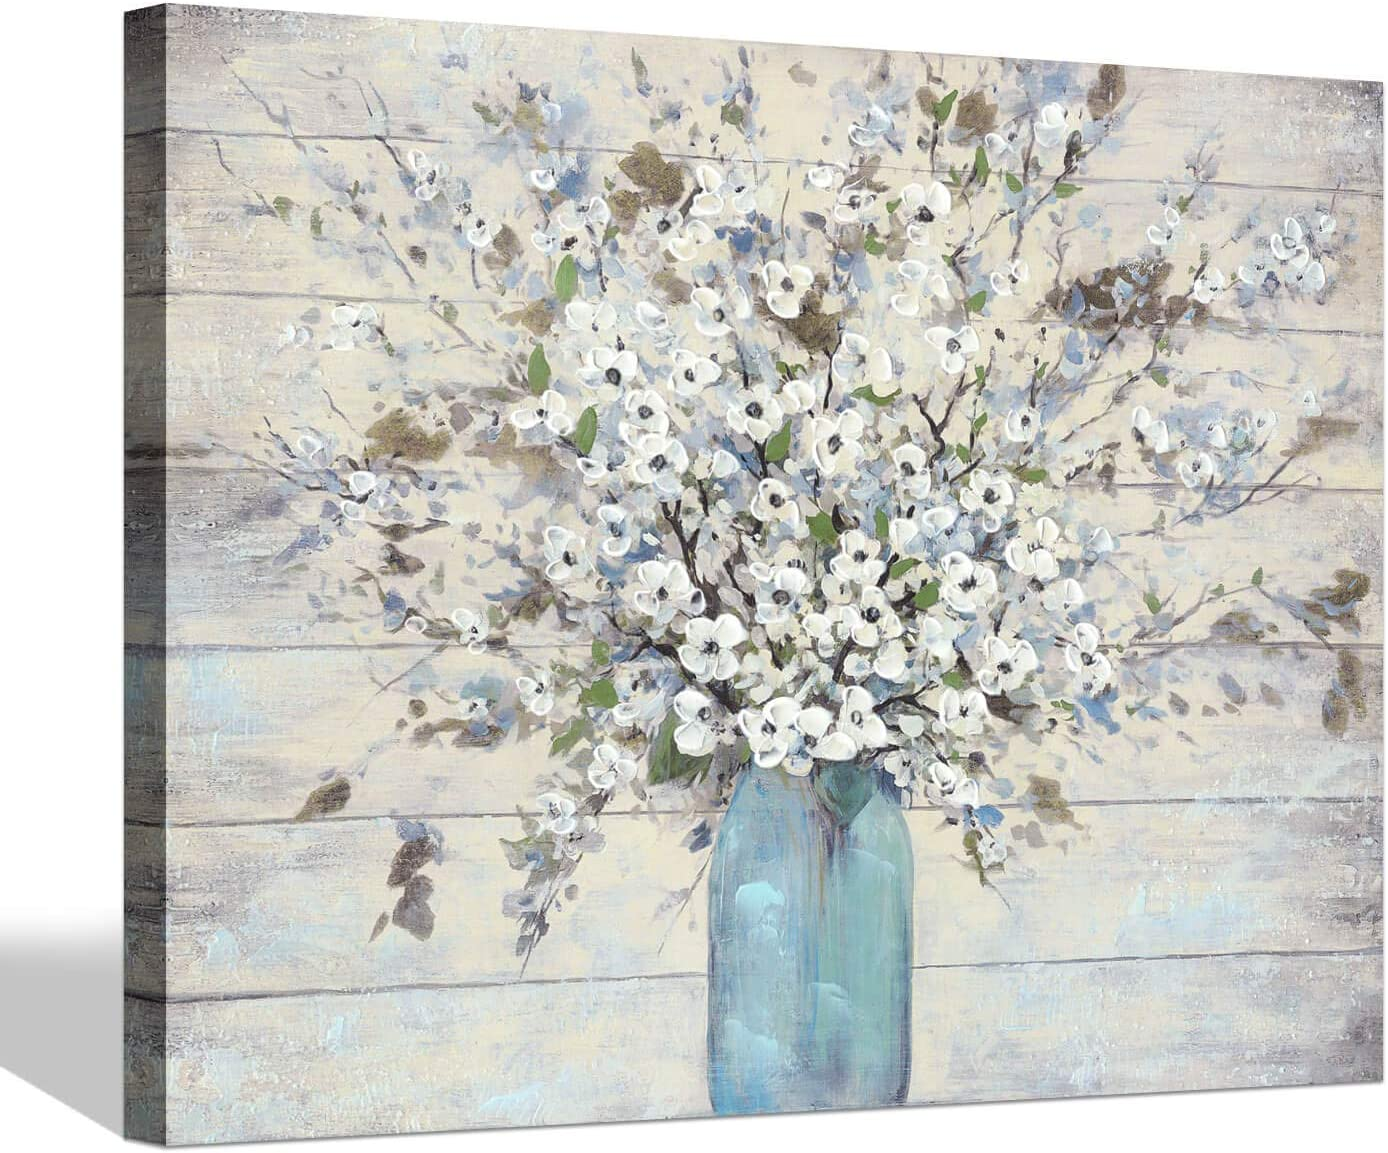 Amazon Com Abstract Flower Canvas Wall Art Bouquet Floral Painting Artwork On Wrapped Canvas For Living Room 24 X 18 X 1 Panel Paintings